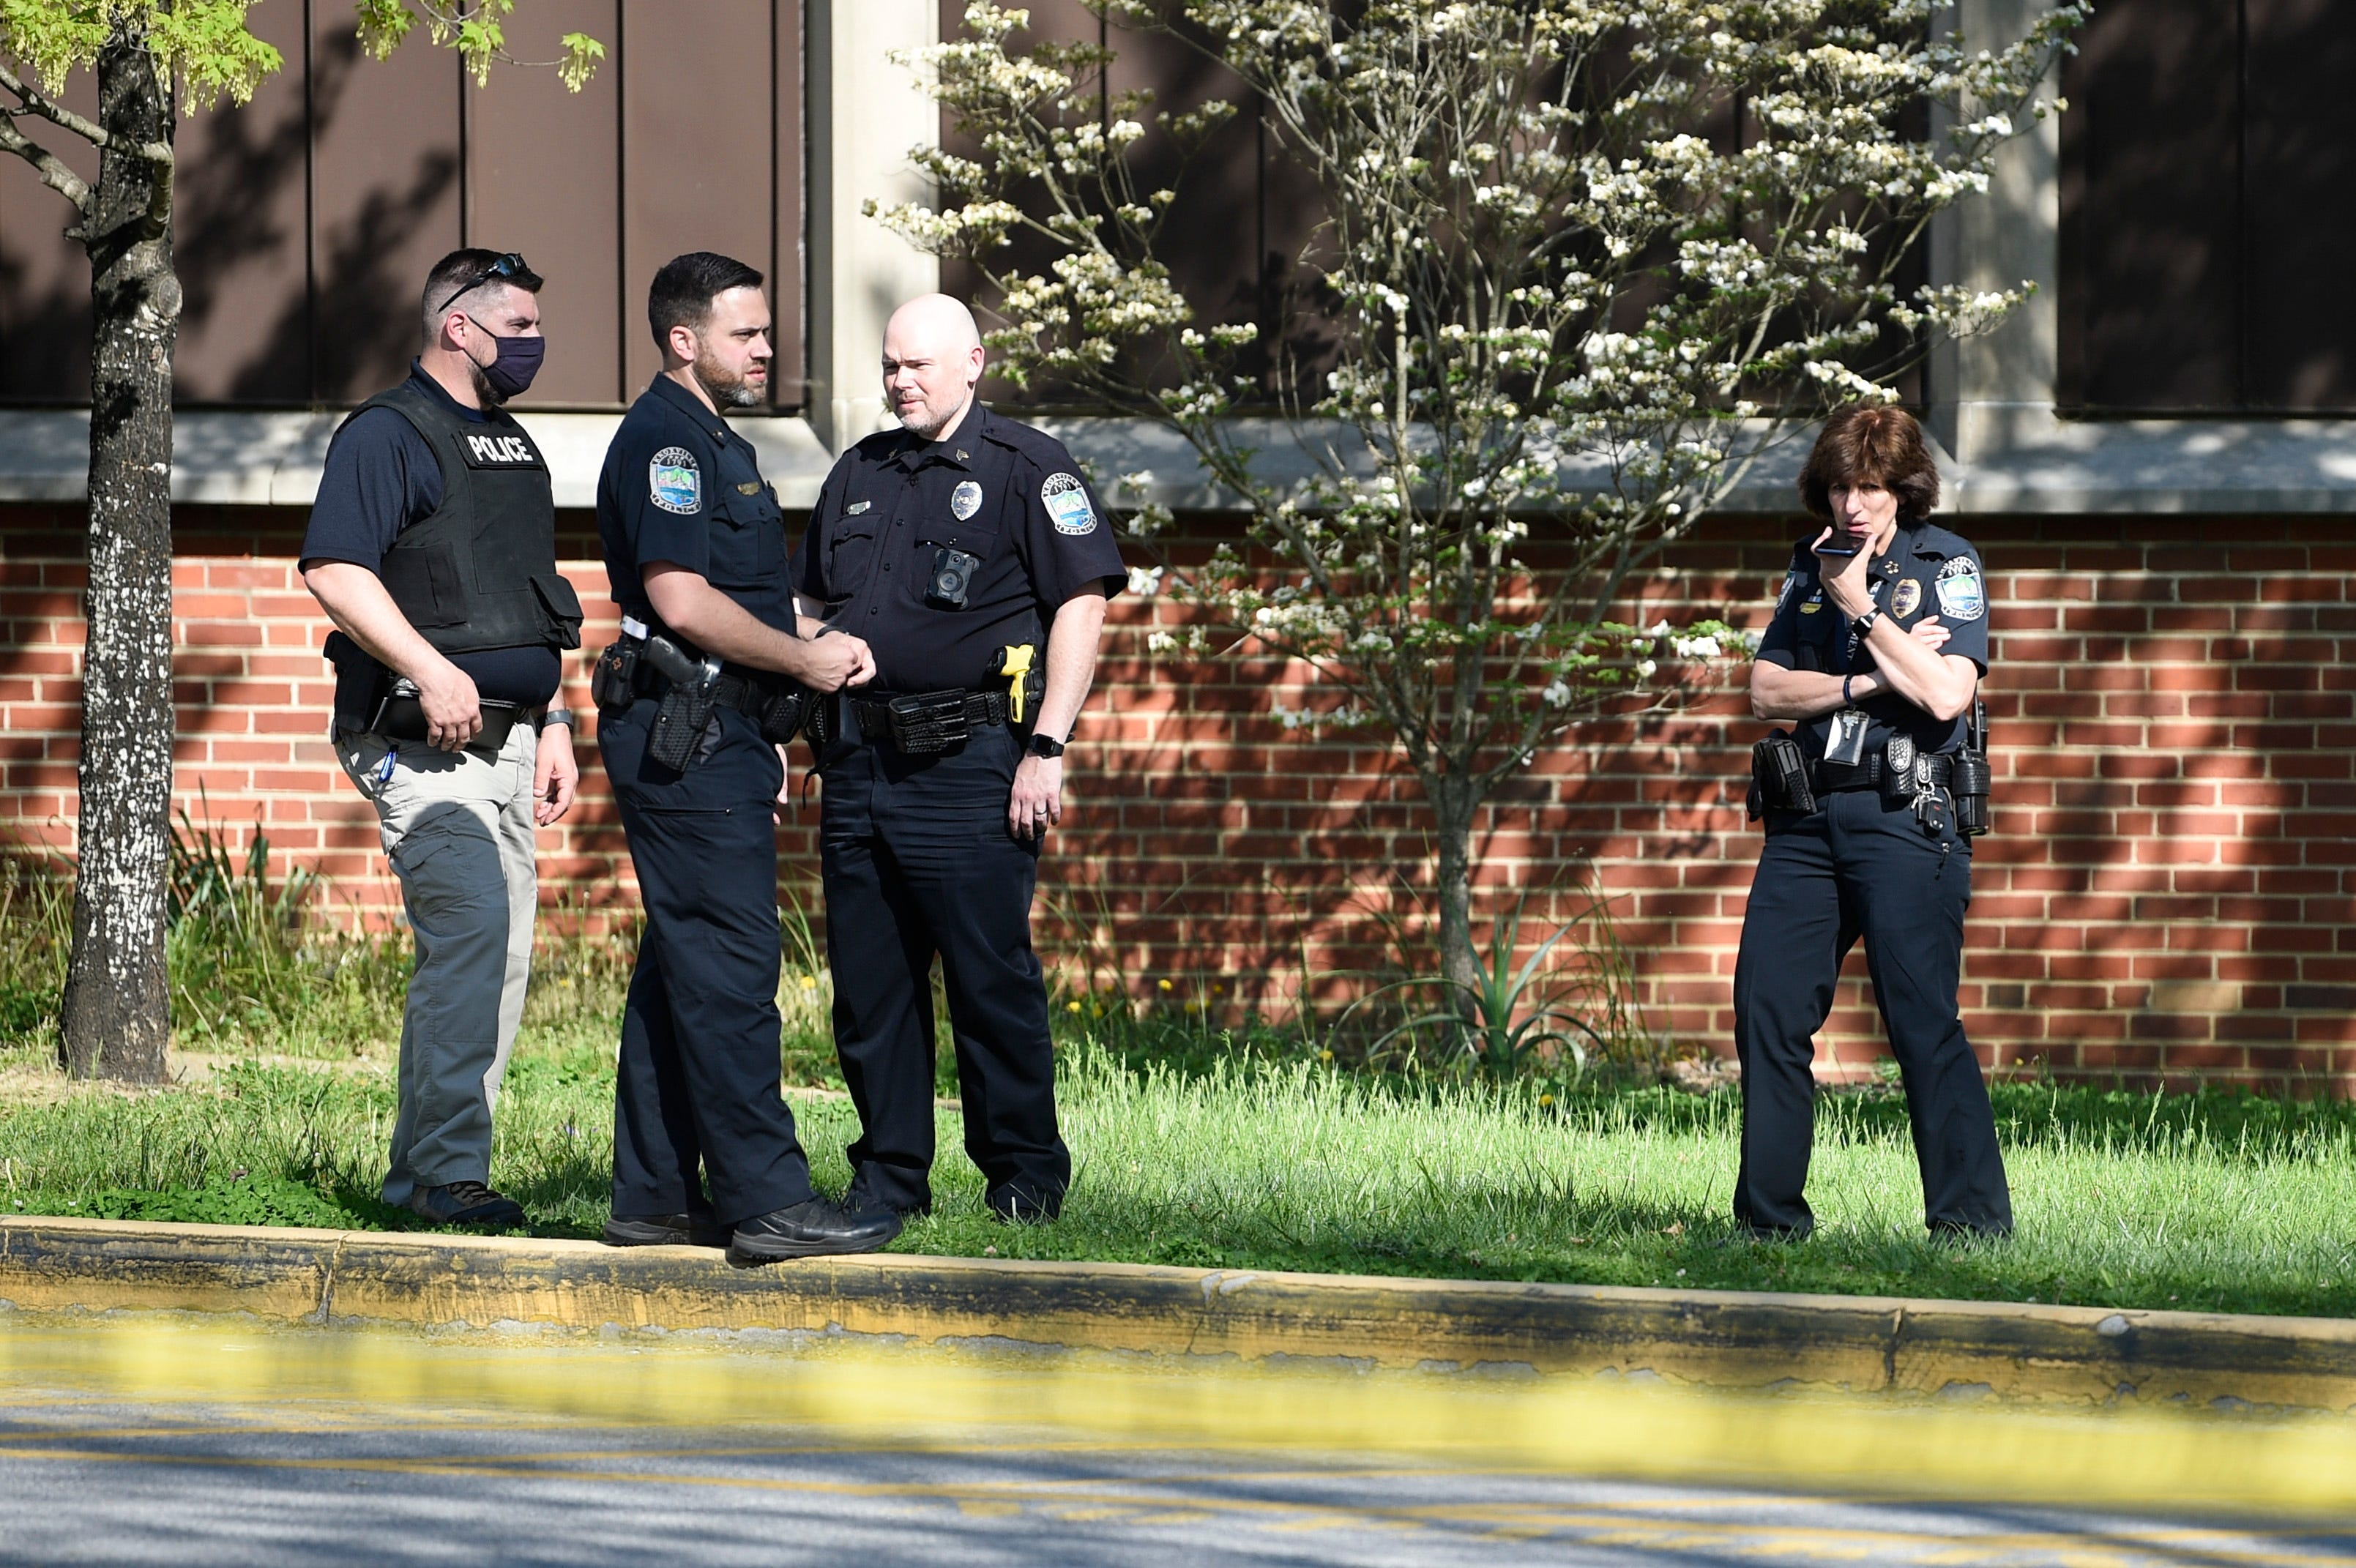 At right, Knoxville Police Chief Eve Thomas speaks on the phone outside Austin-East High School in Knoxville, Monday, April 12, 2021. Multiple people have been shot, including a Knoxville police officer, according to the Knoxville Police Department.